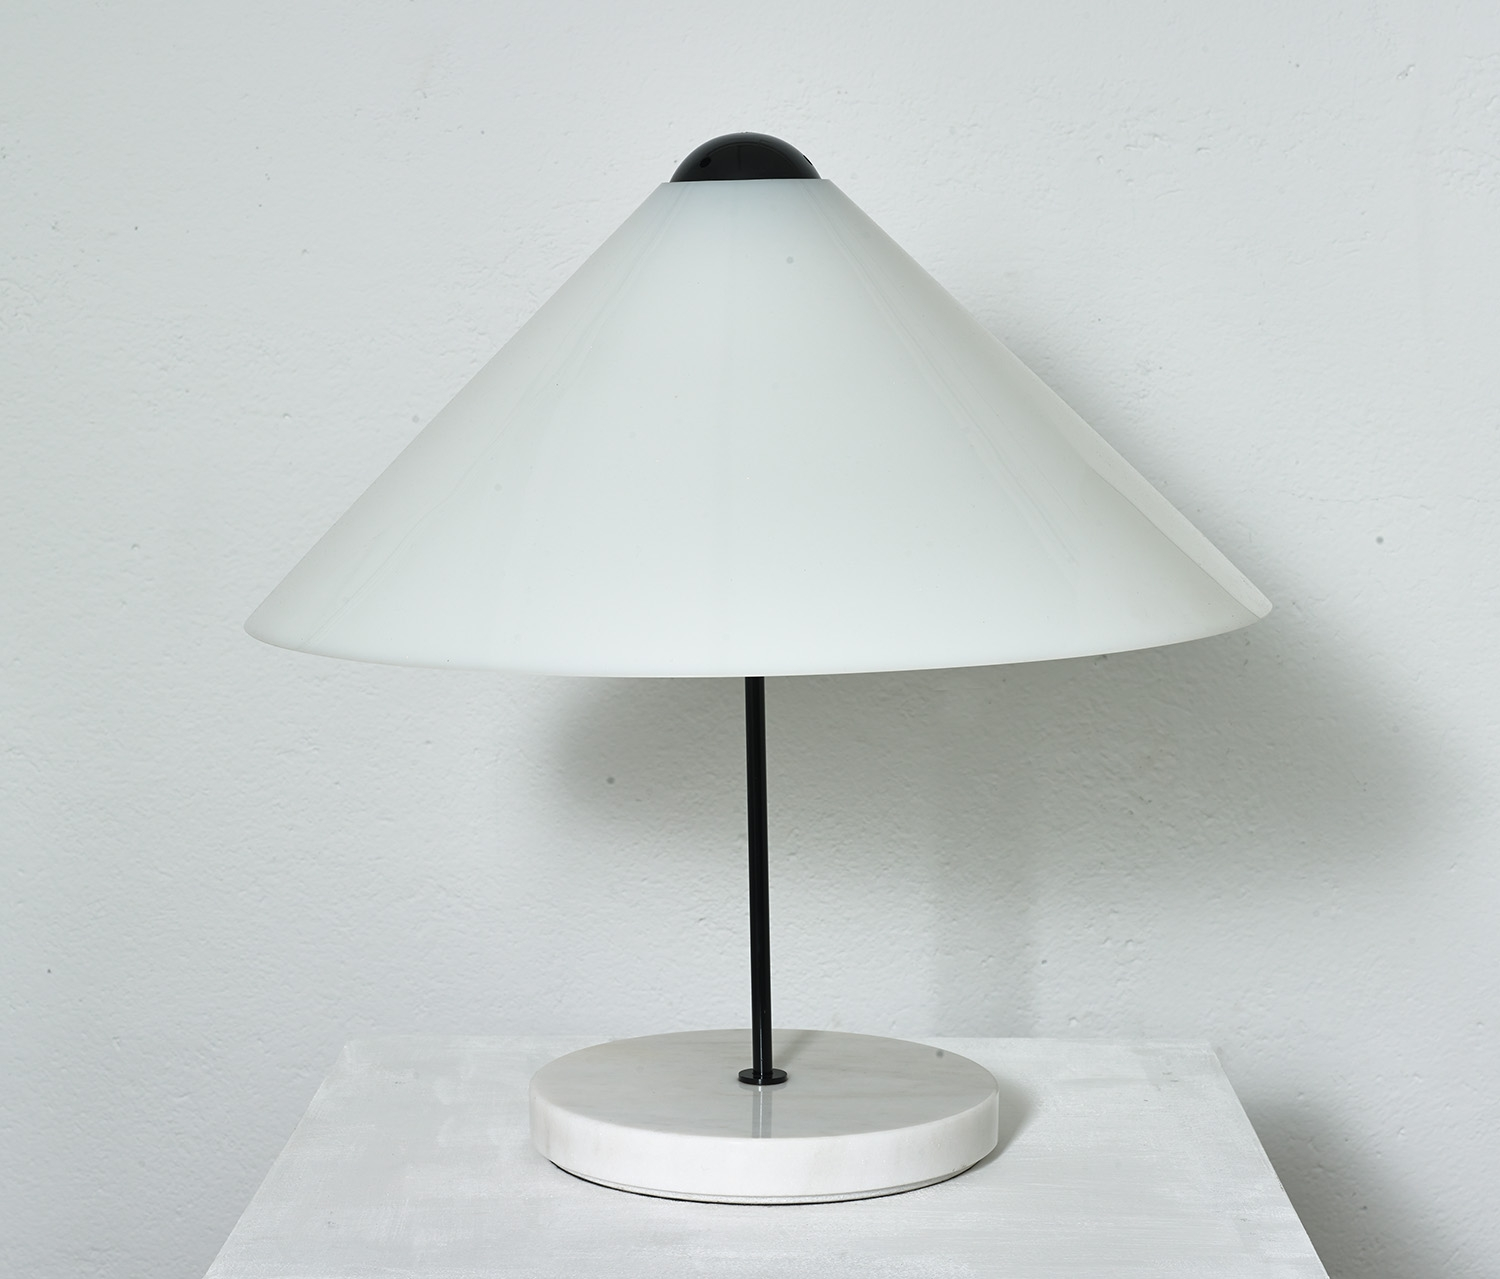 table-lamp-snow-by-vico-magistretti-1973-image-01